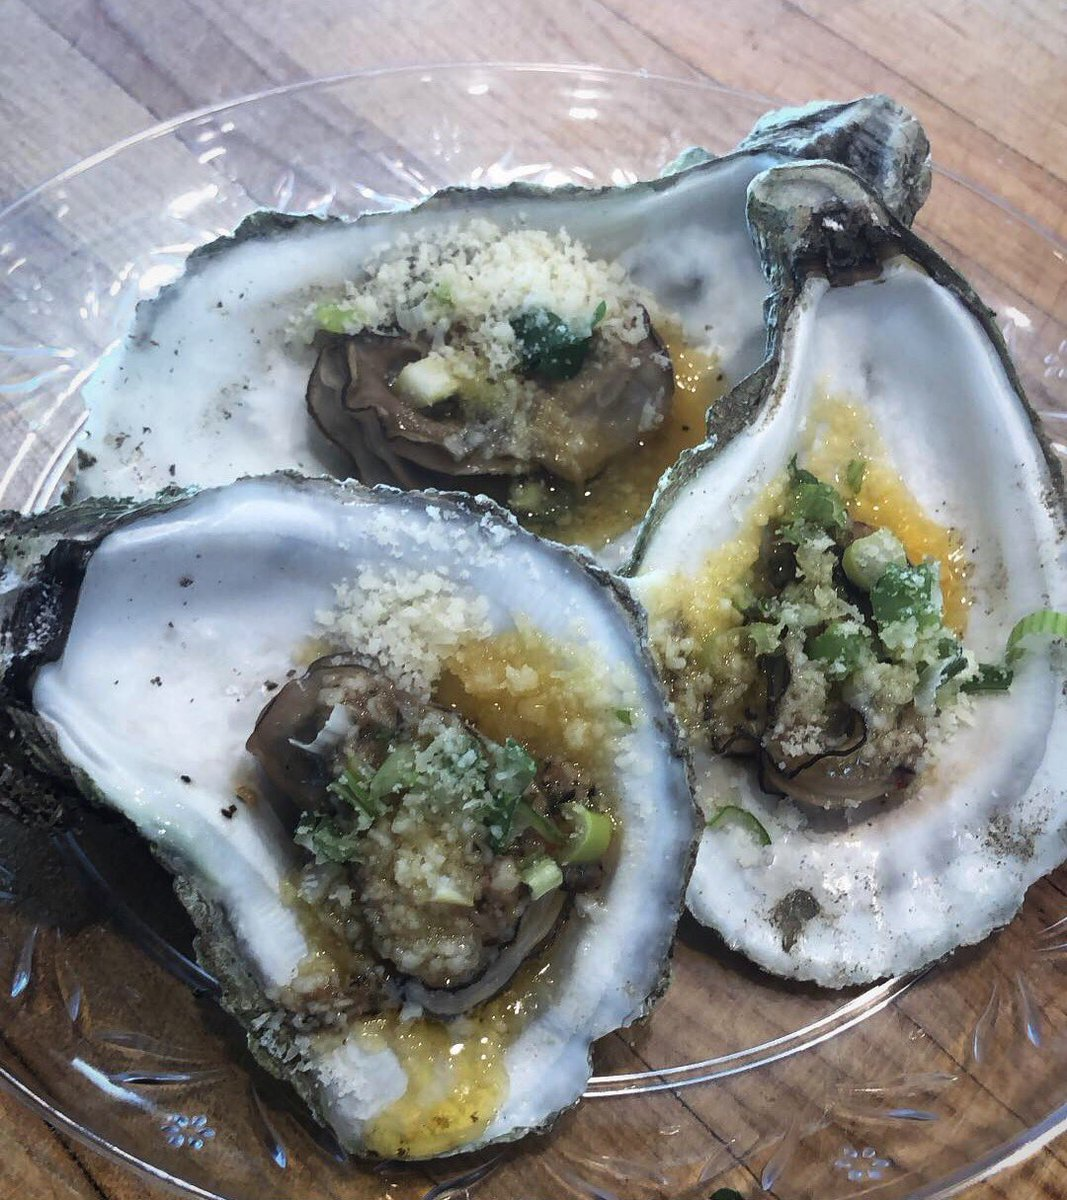 Today was so much fun participating in our first Harvest Taste of Solomons! #solomons #oyster #maryland #tasty